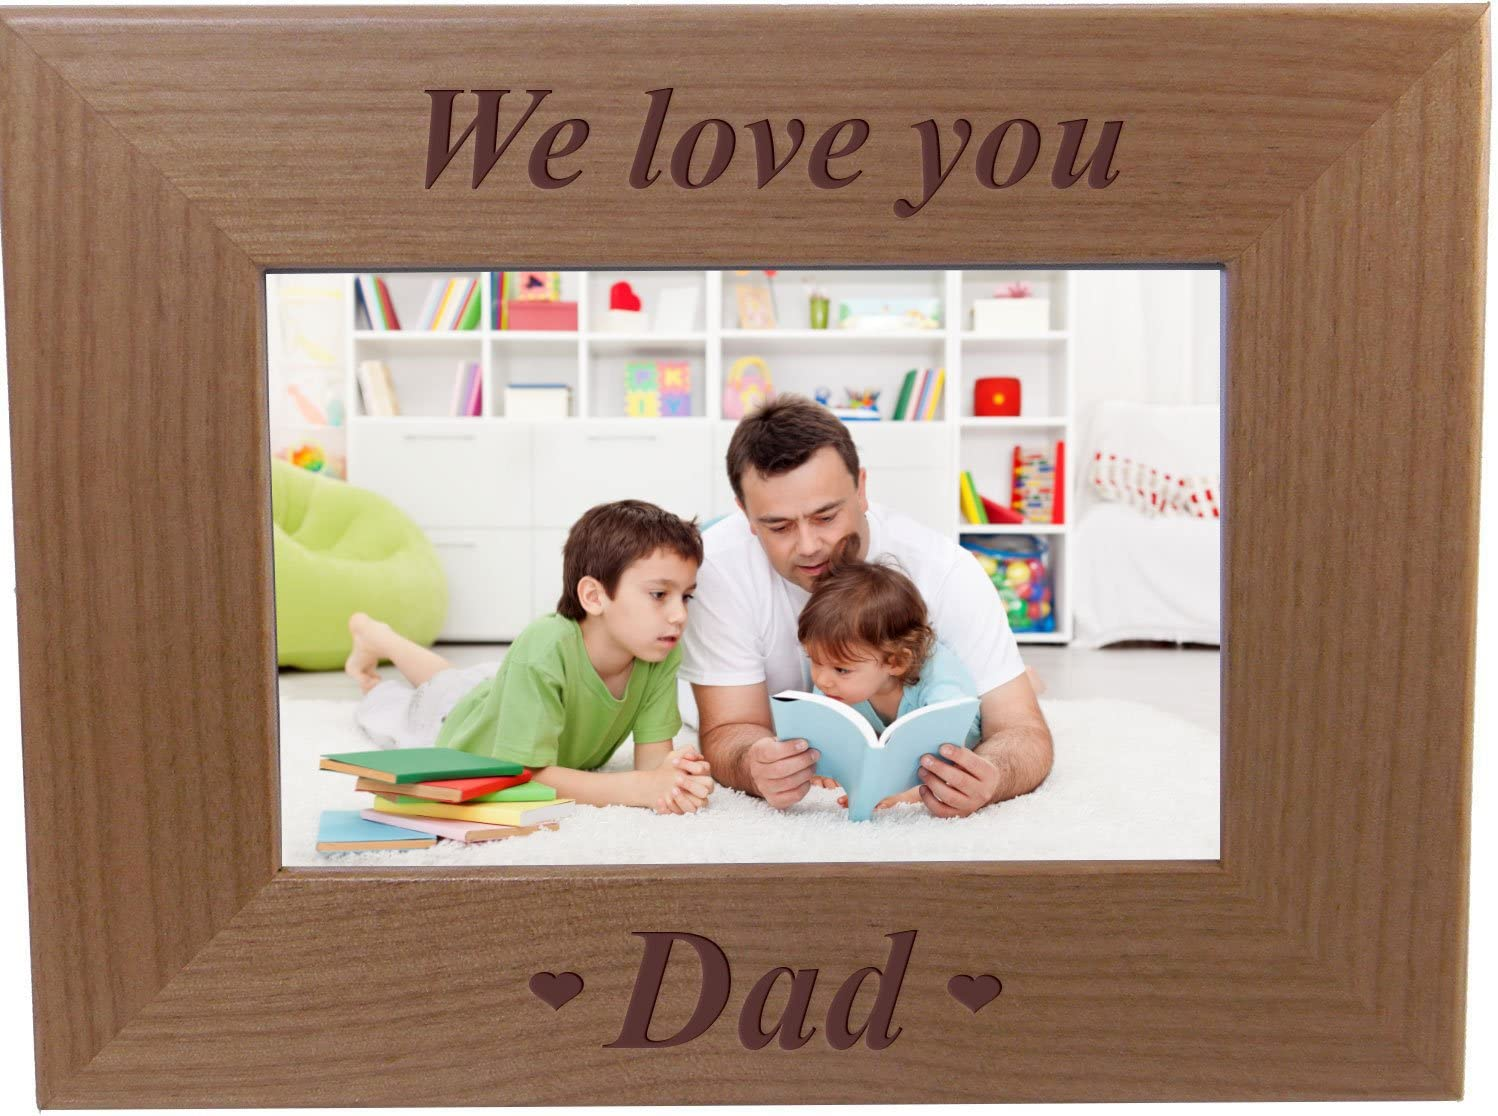 Long-awaited CustomGiftsNow We Love You Dad - Wood Frame F Engraved Ranking TOP4 Picture